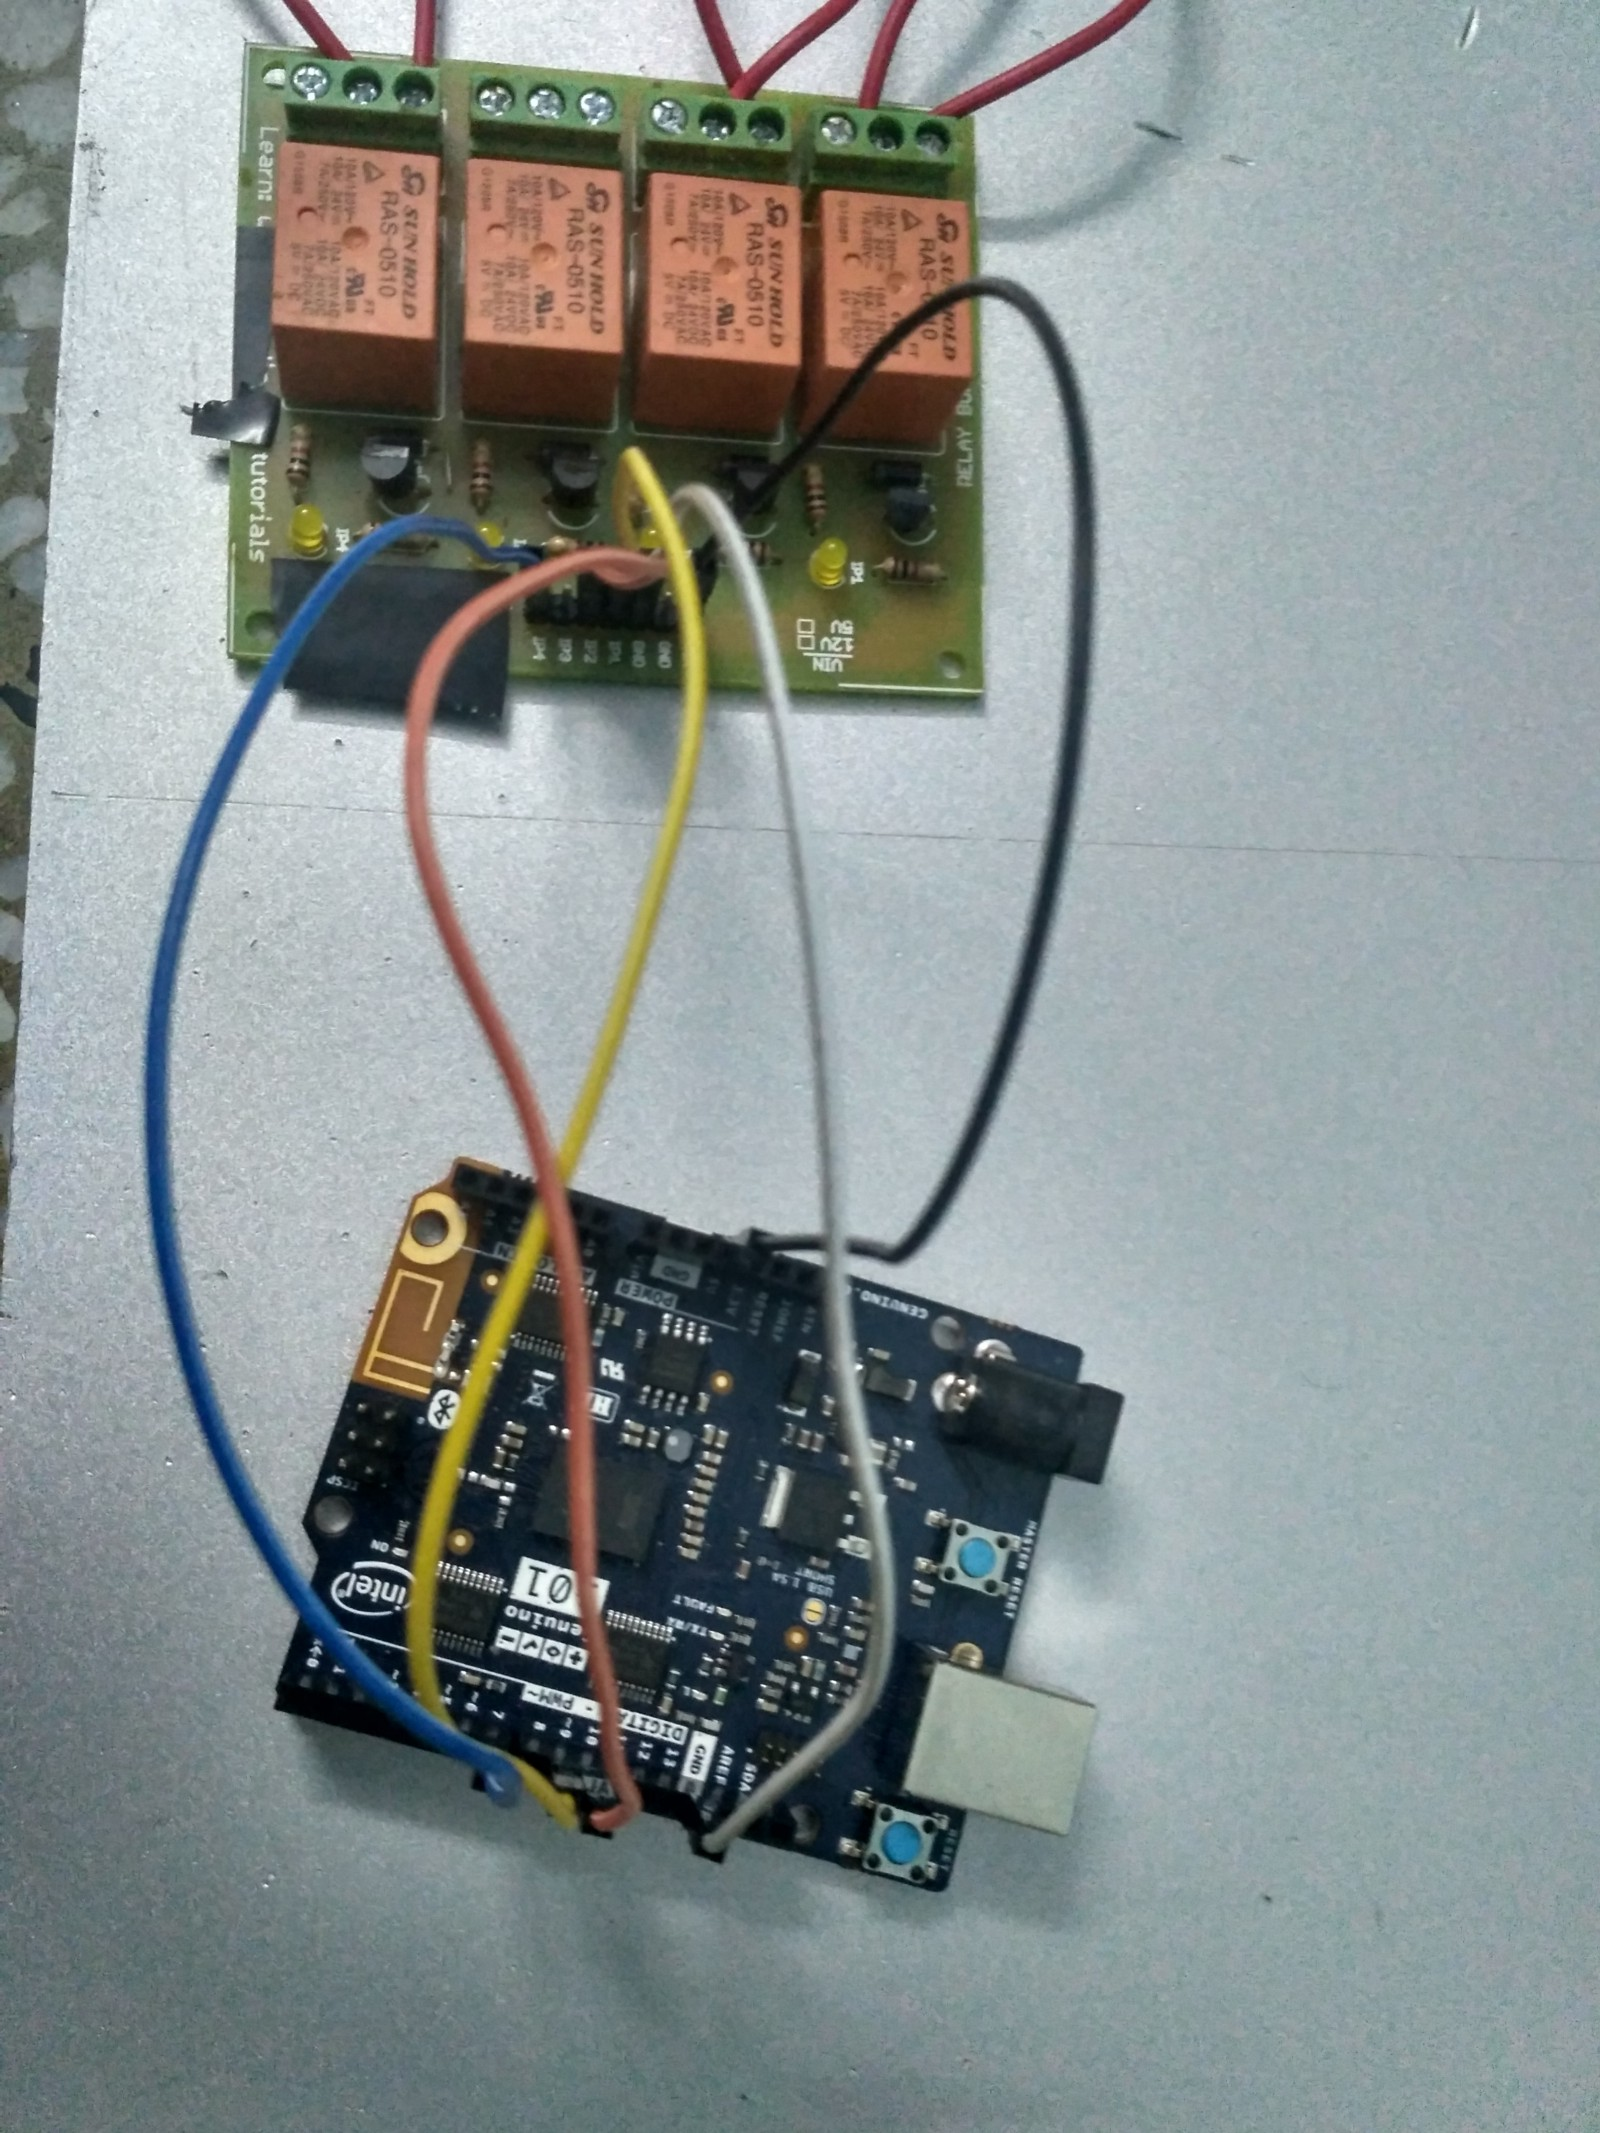 Lets Make Home Automation Easy Naveen Manwani Medium Topic How To Control Very Really High Currents With Arduino Since The Operates At 5v It Cant These Higher Voltage Devices Directly But You Can Use A Relay Switch 120240v Current And